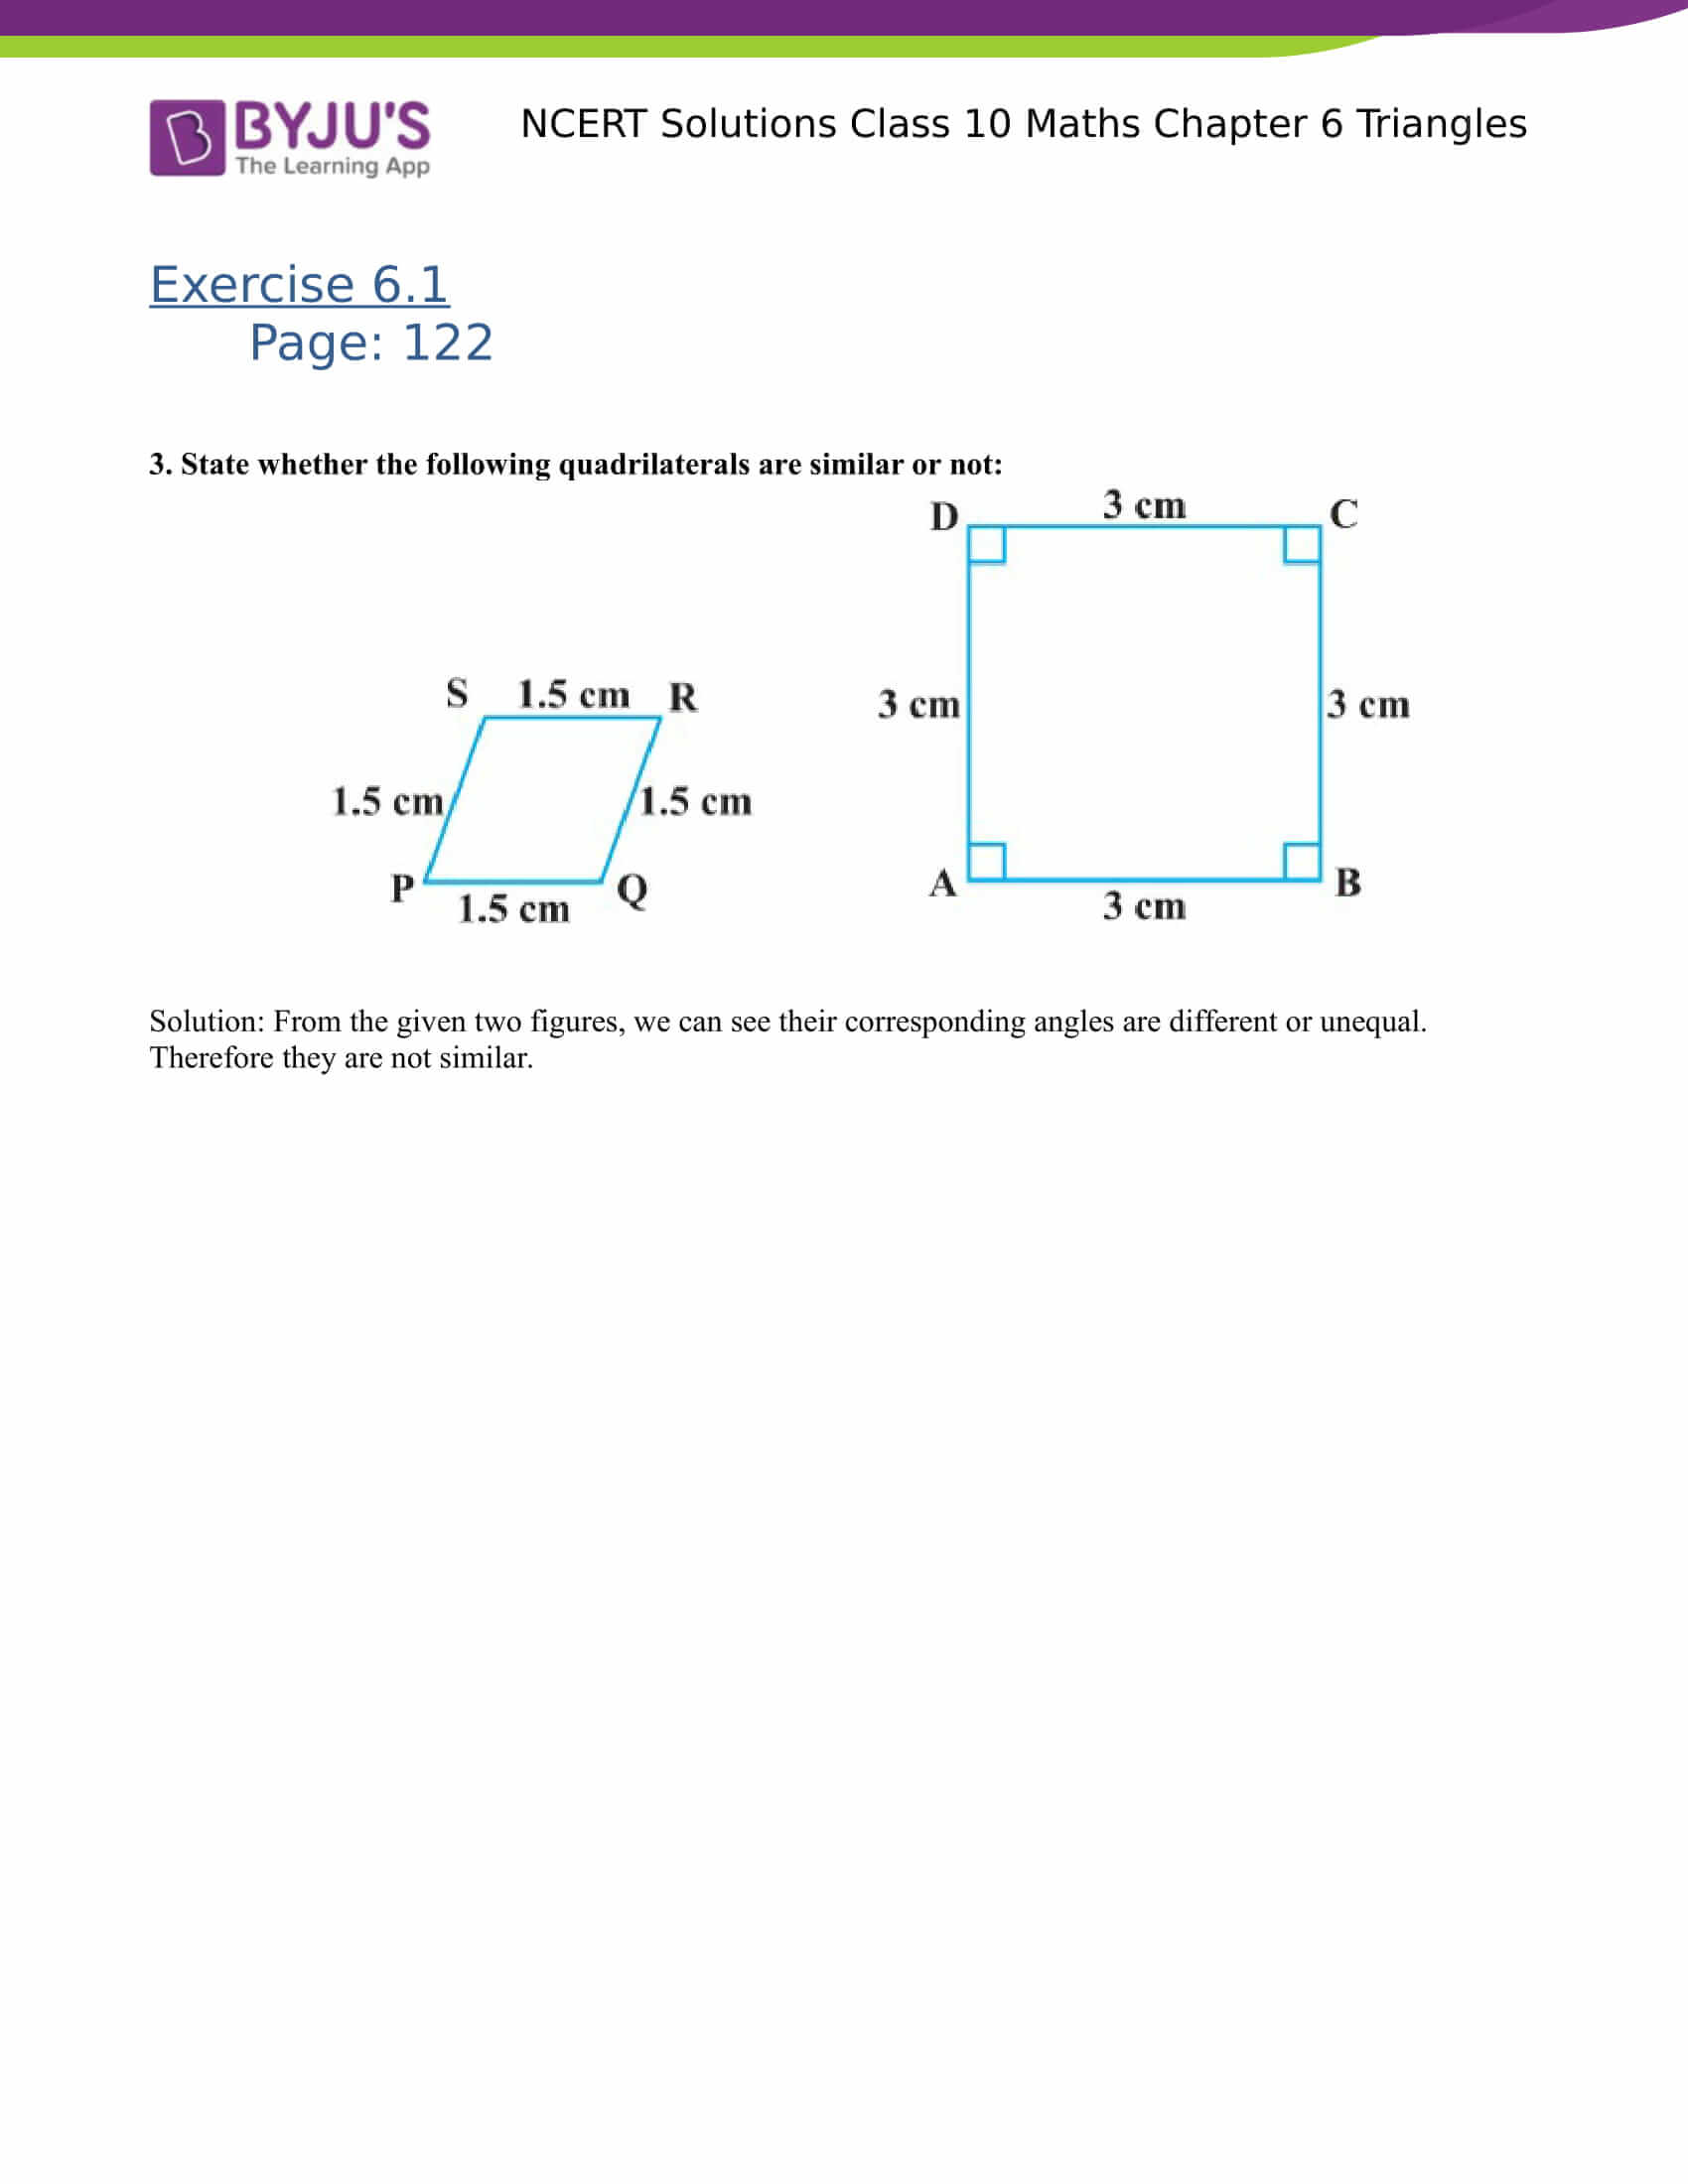 NCERT Solutions for class 10 Maths Chapter 6 Triangles Part 2